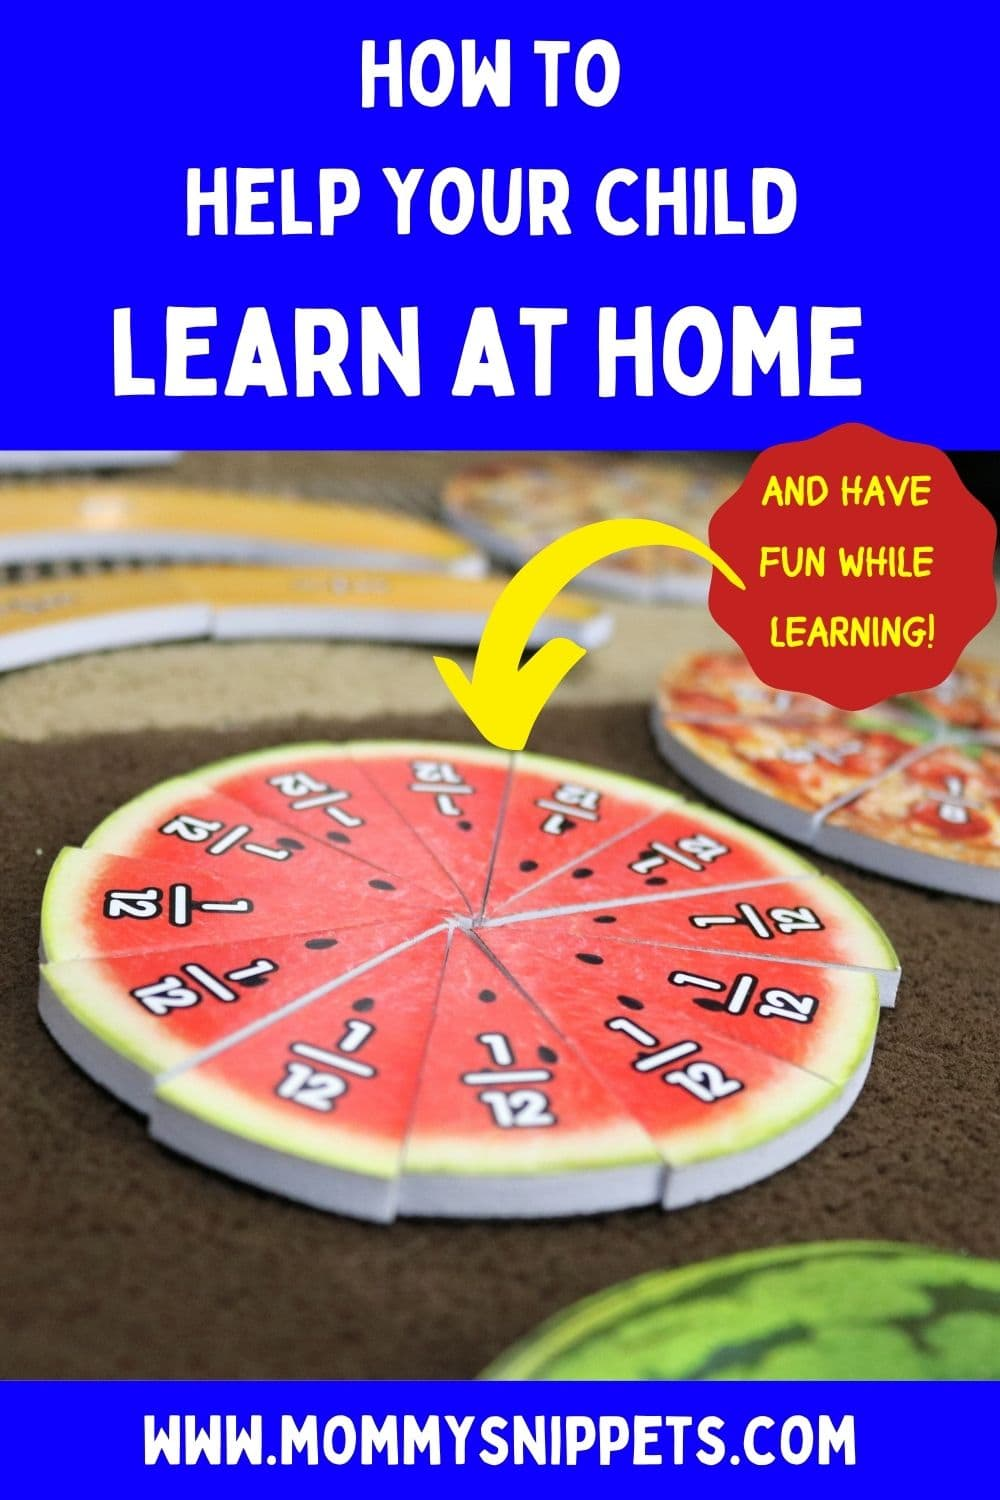 How to Help Your Child Learn at Home and Have Fun While Doing So!- MommySnippets.com